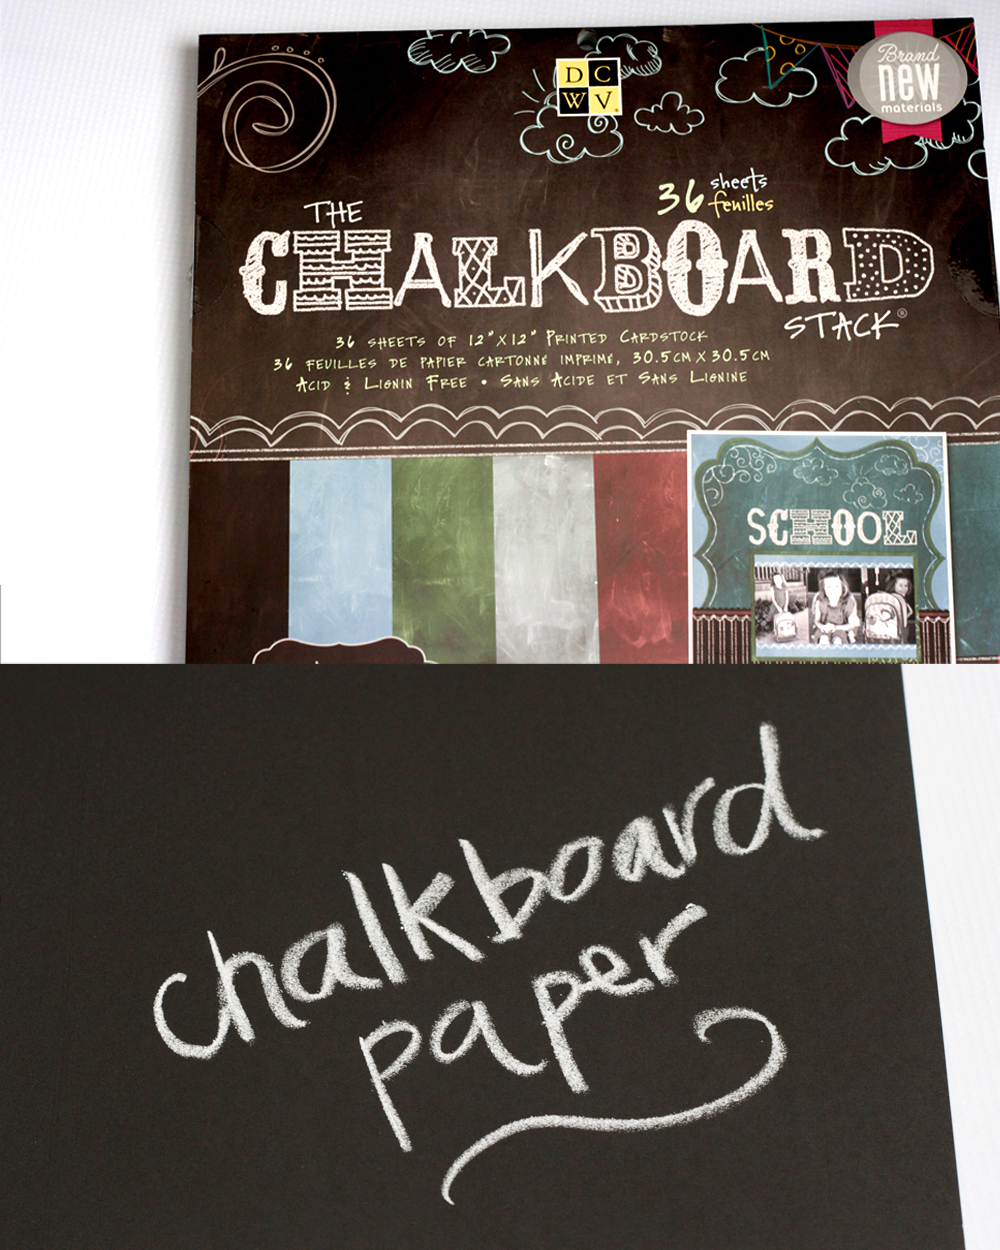 chalkboard paper Turn any surface in your home or business into a chalkboard use the chalkboard  contact paper to create chalkboard labels, cover walls, spruce up kitchens,.